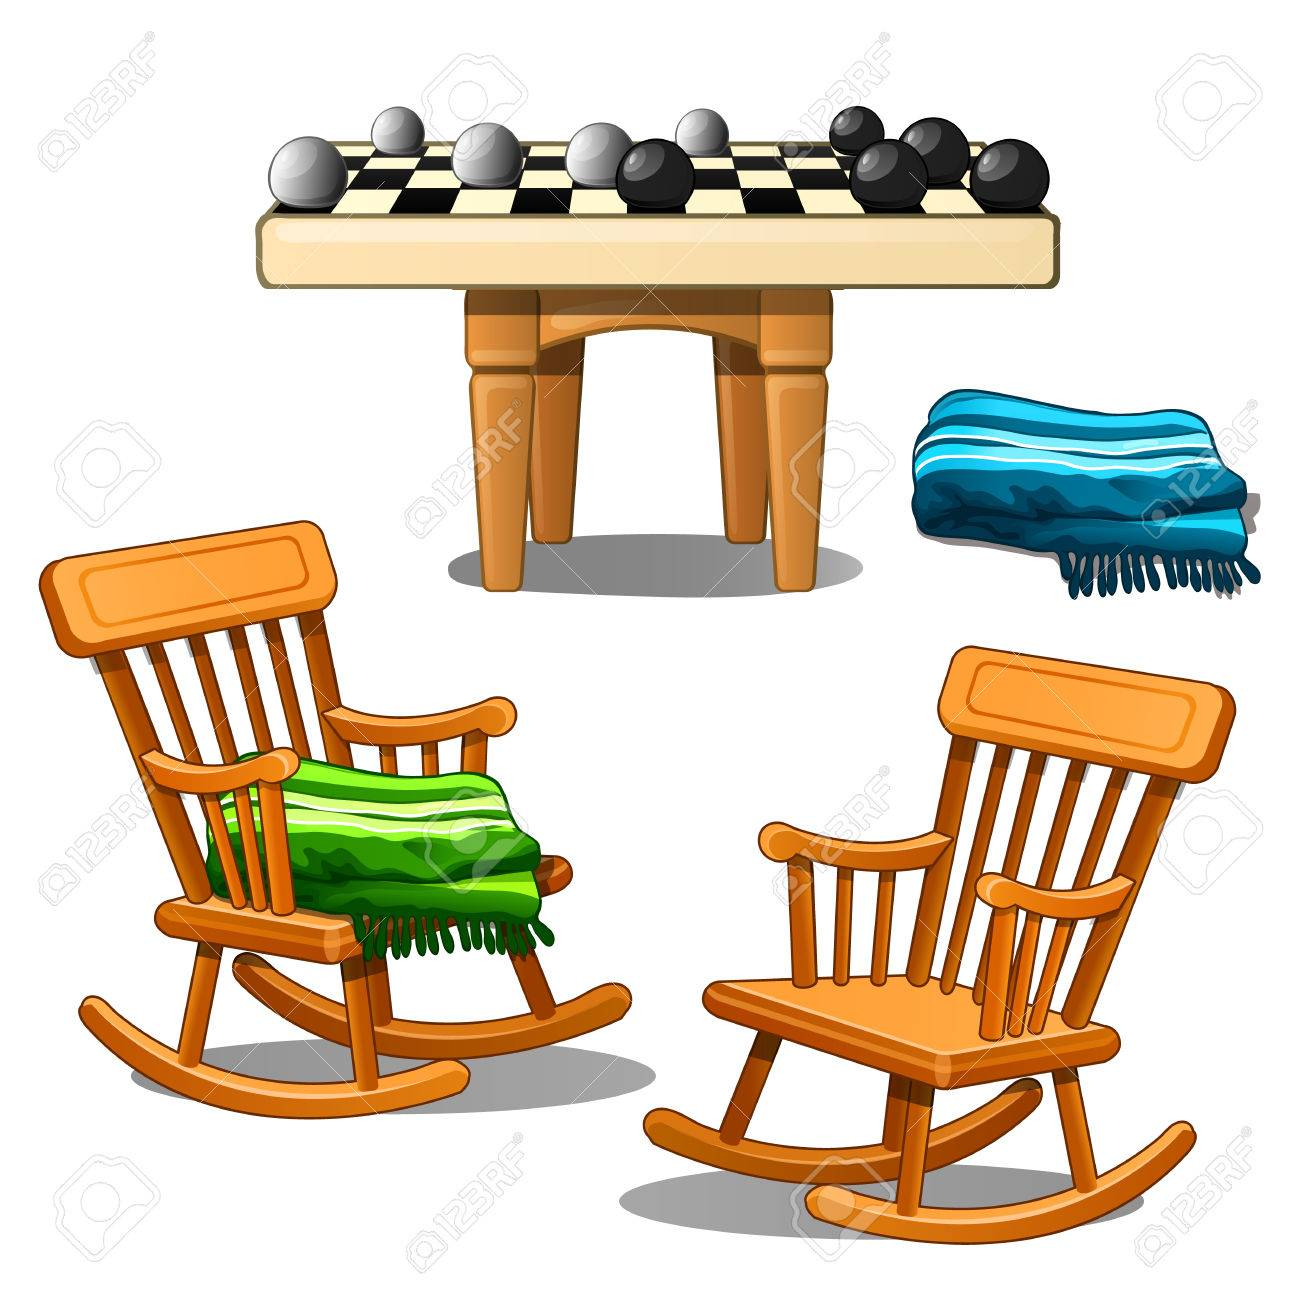 Two Rocking Chairs, Green And Blue Plaid And Checkers. Comfort, Board Games,